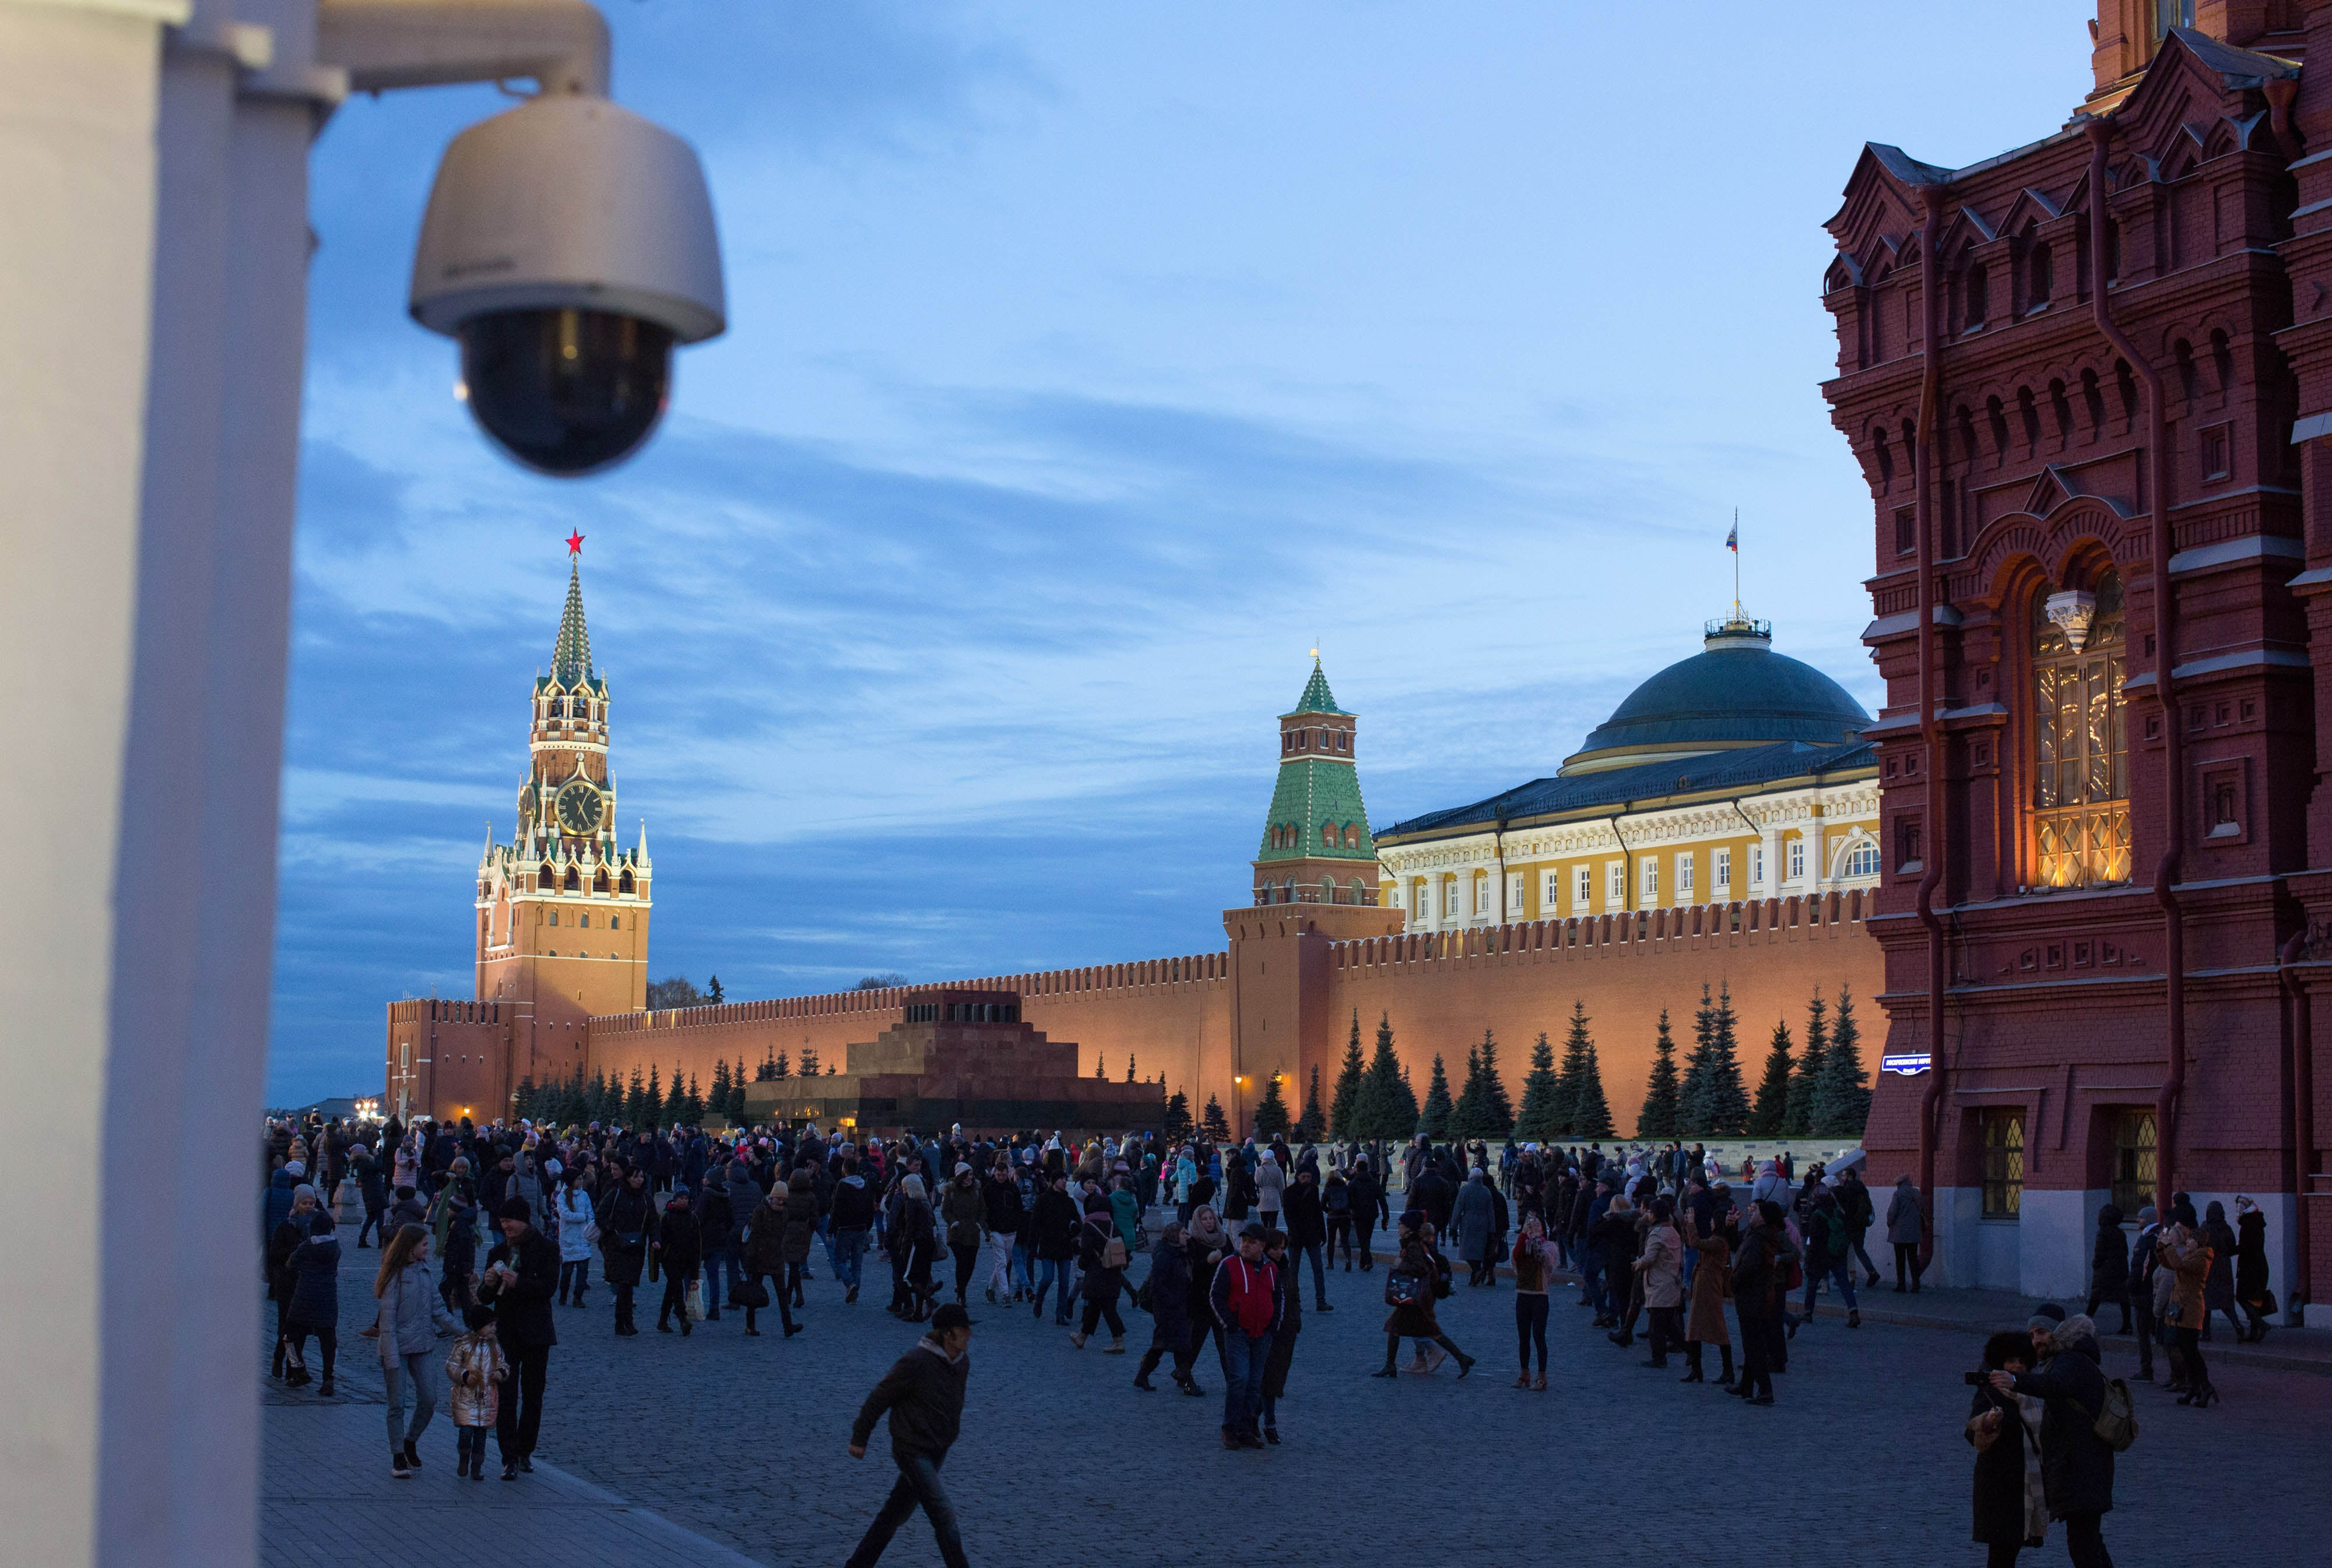 Russia: Broad Facial Recognition Use Undermines Rights